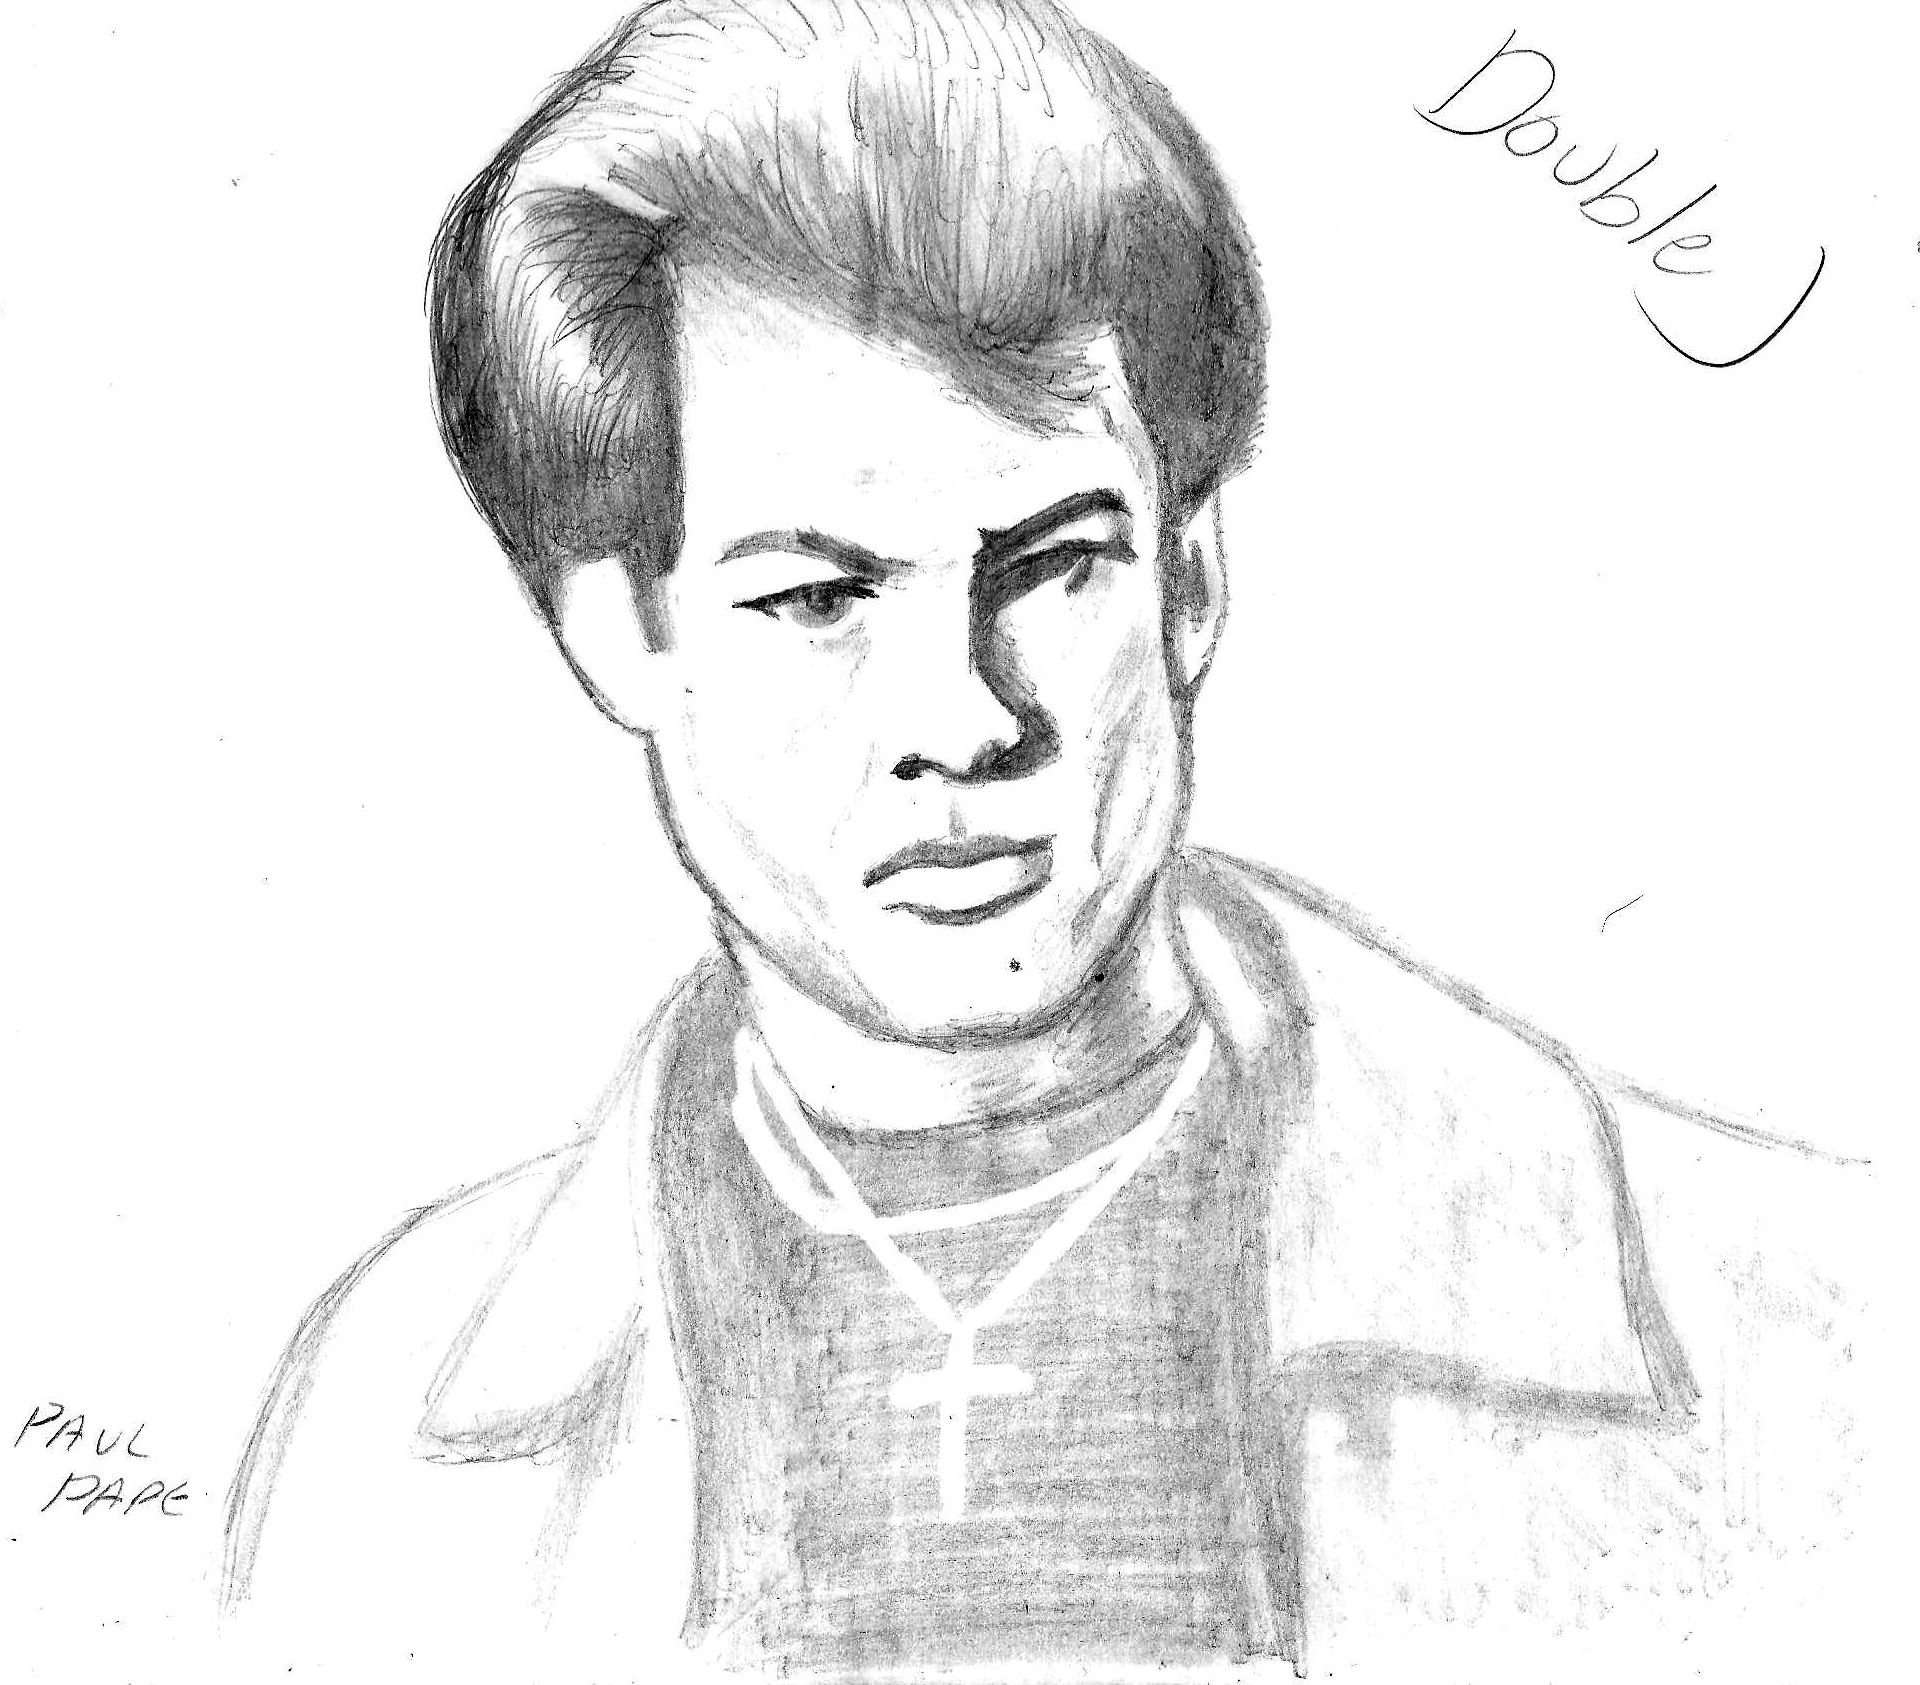 Double J drawing